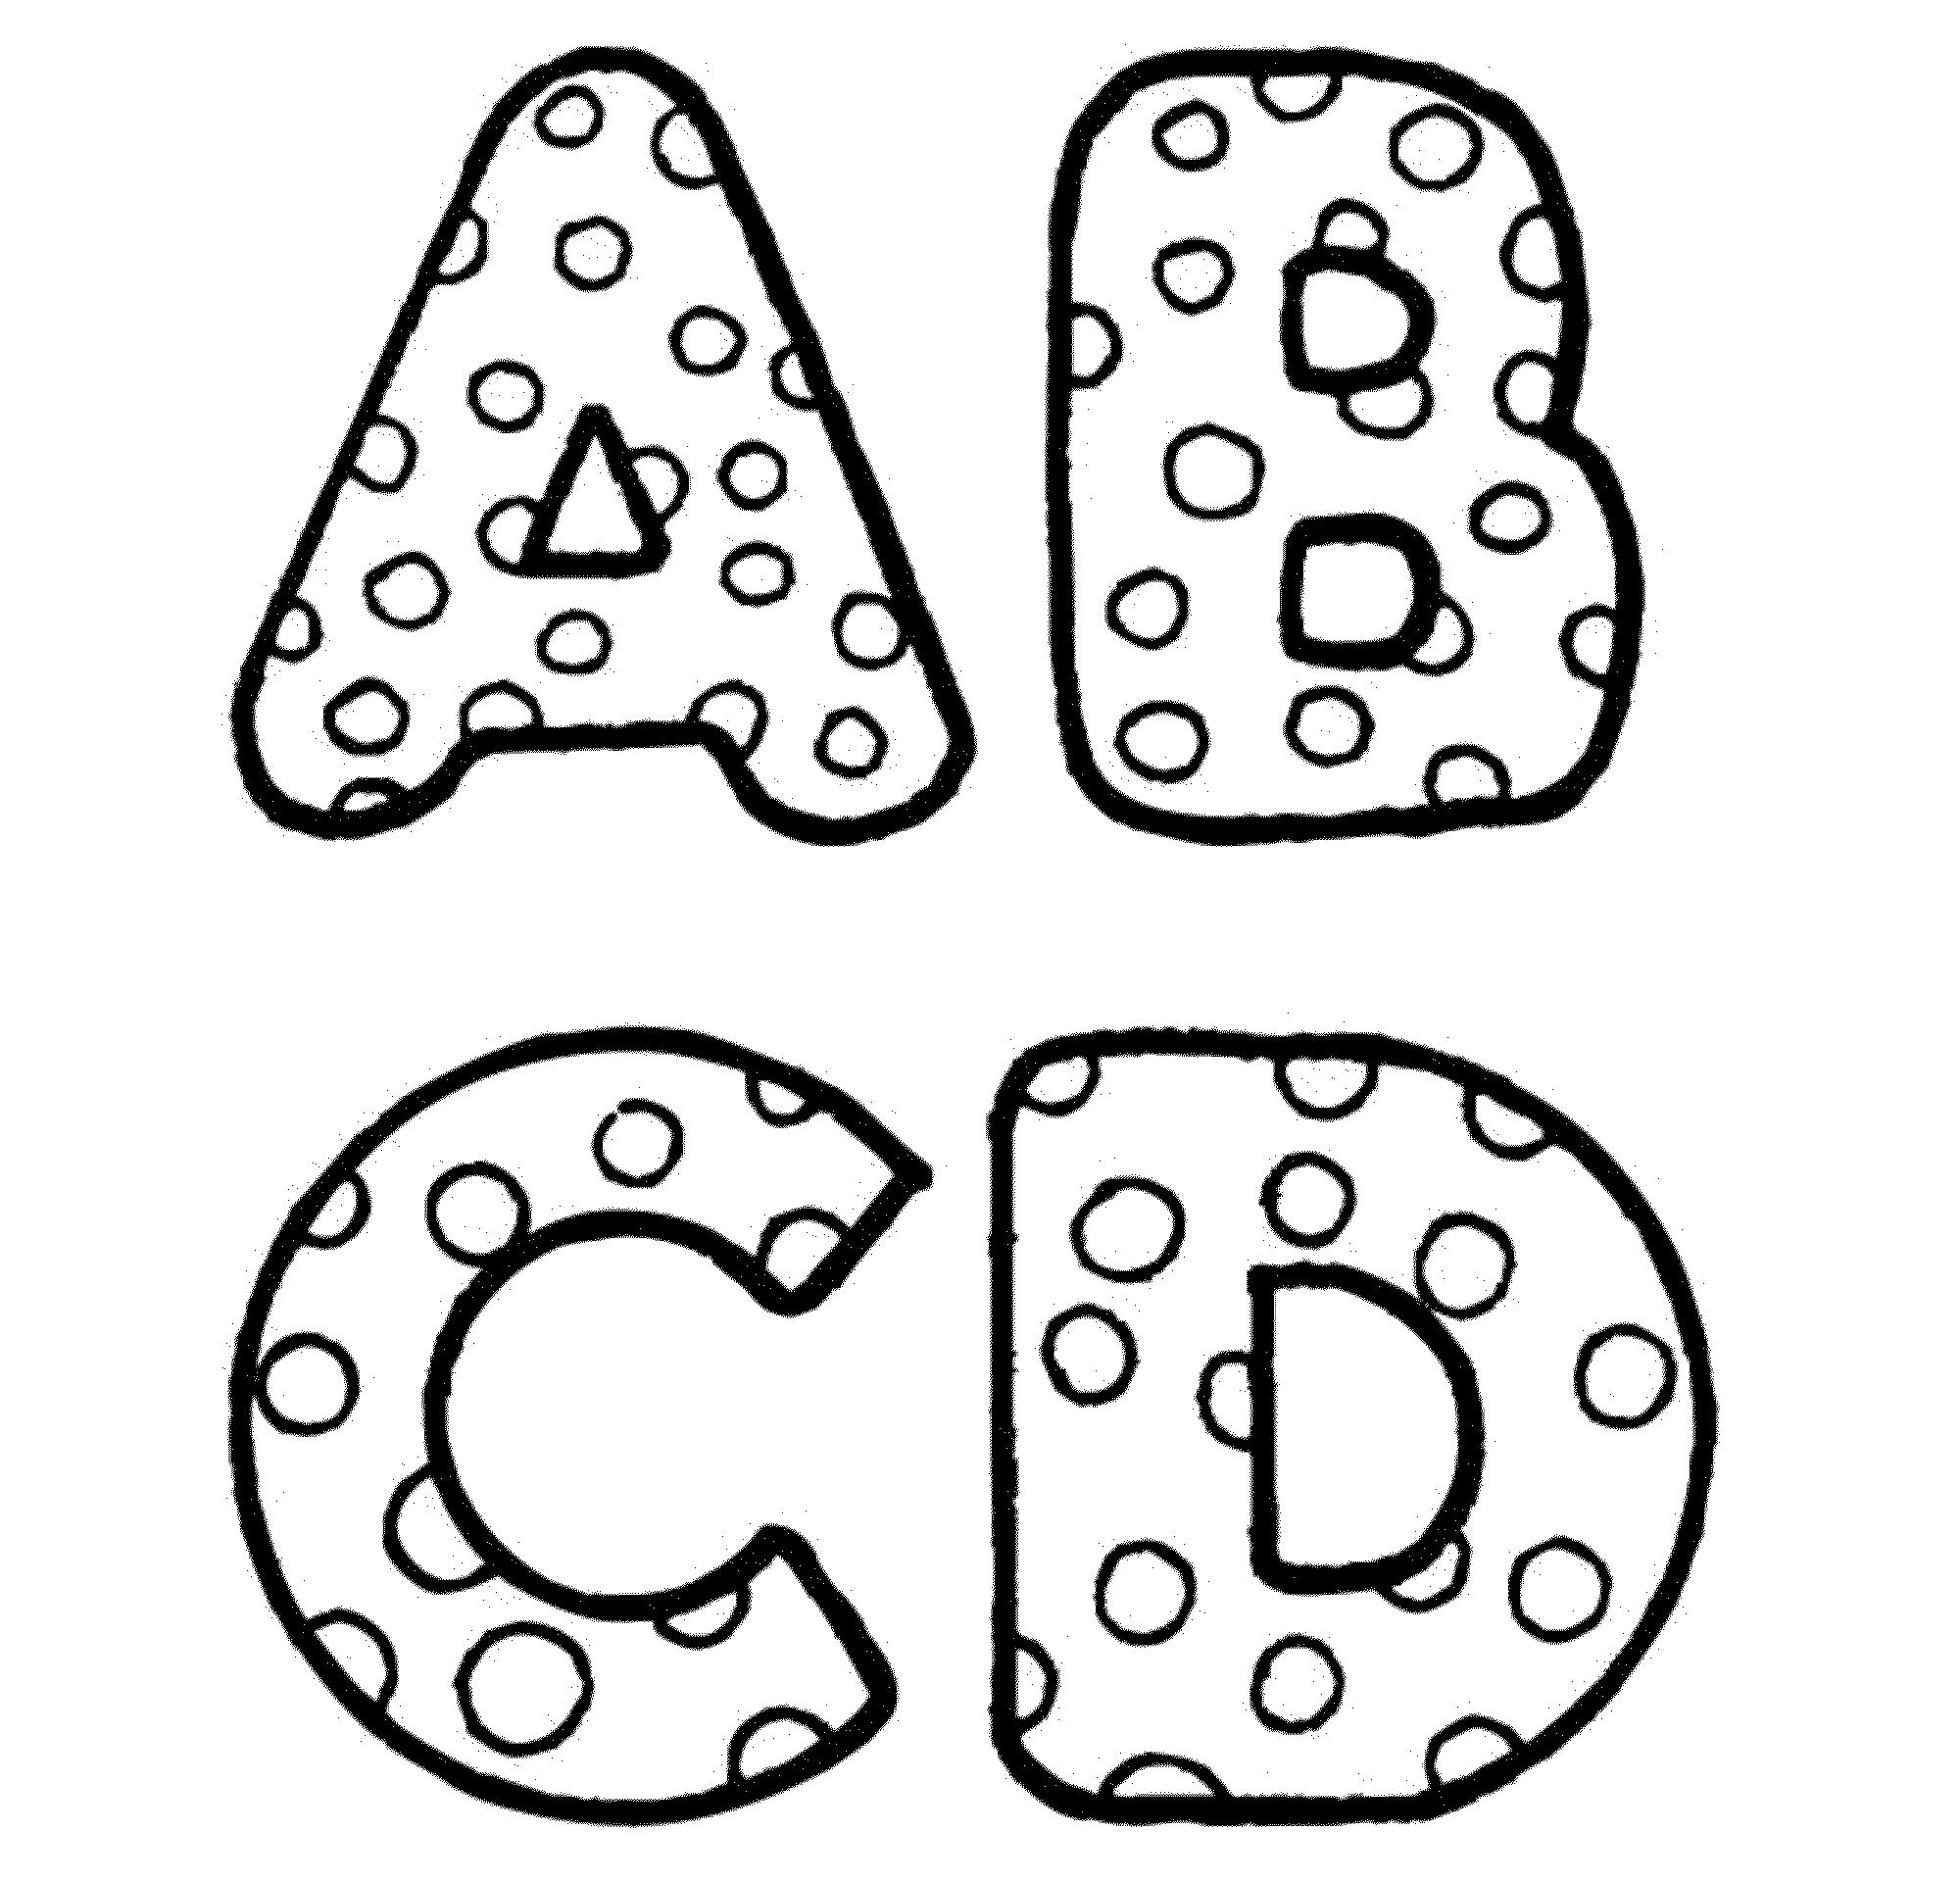 abc coloring page free printable abc coloring pages for kids coloring page abc